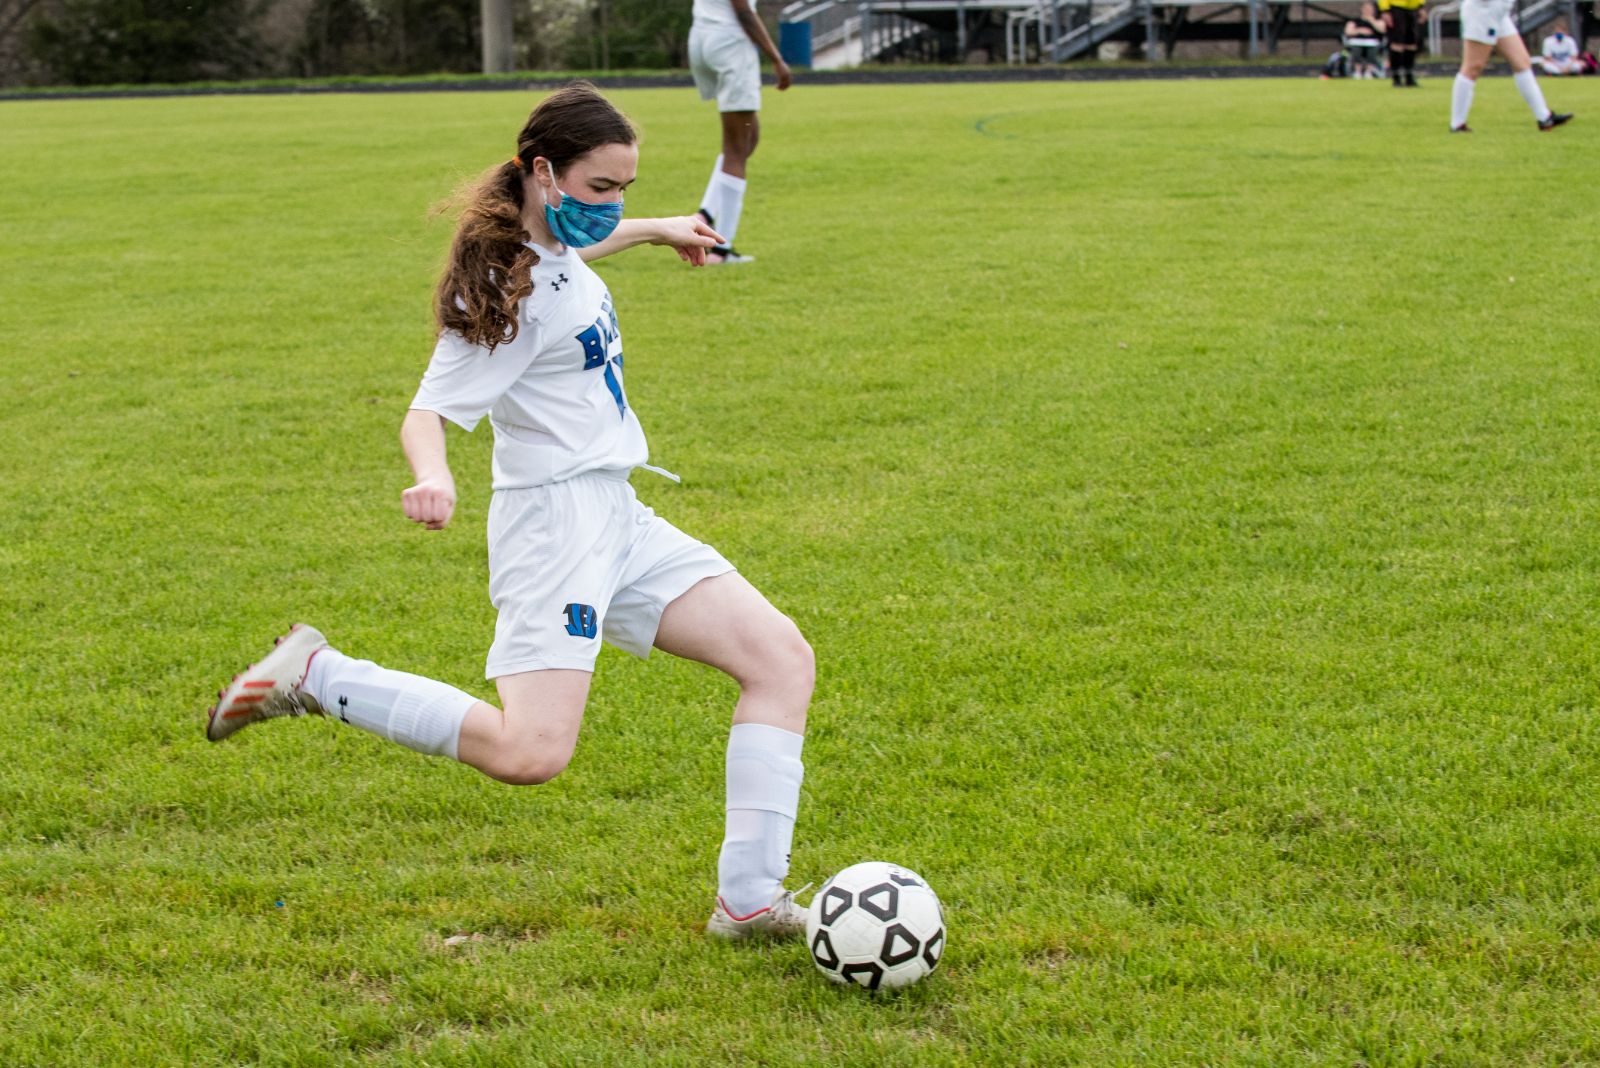 JV Girls Soccer Photos – 4/7/21 at Magruder